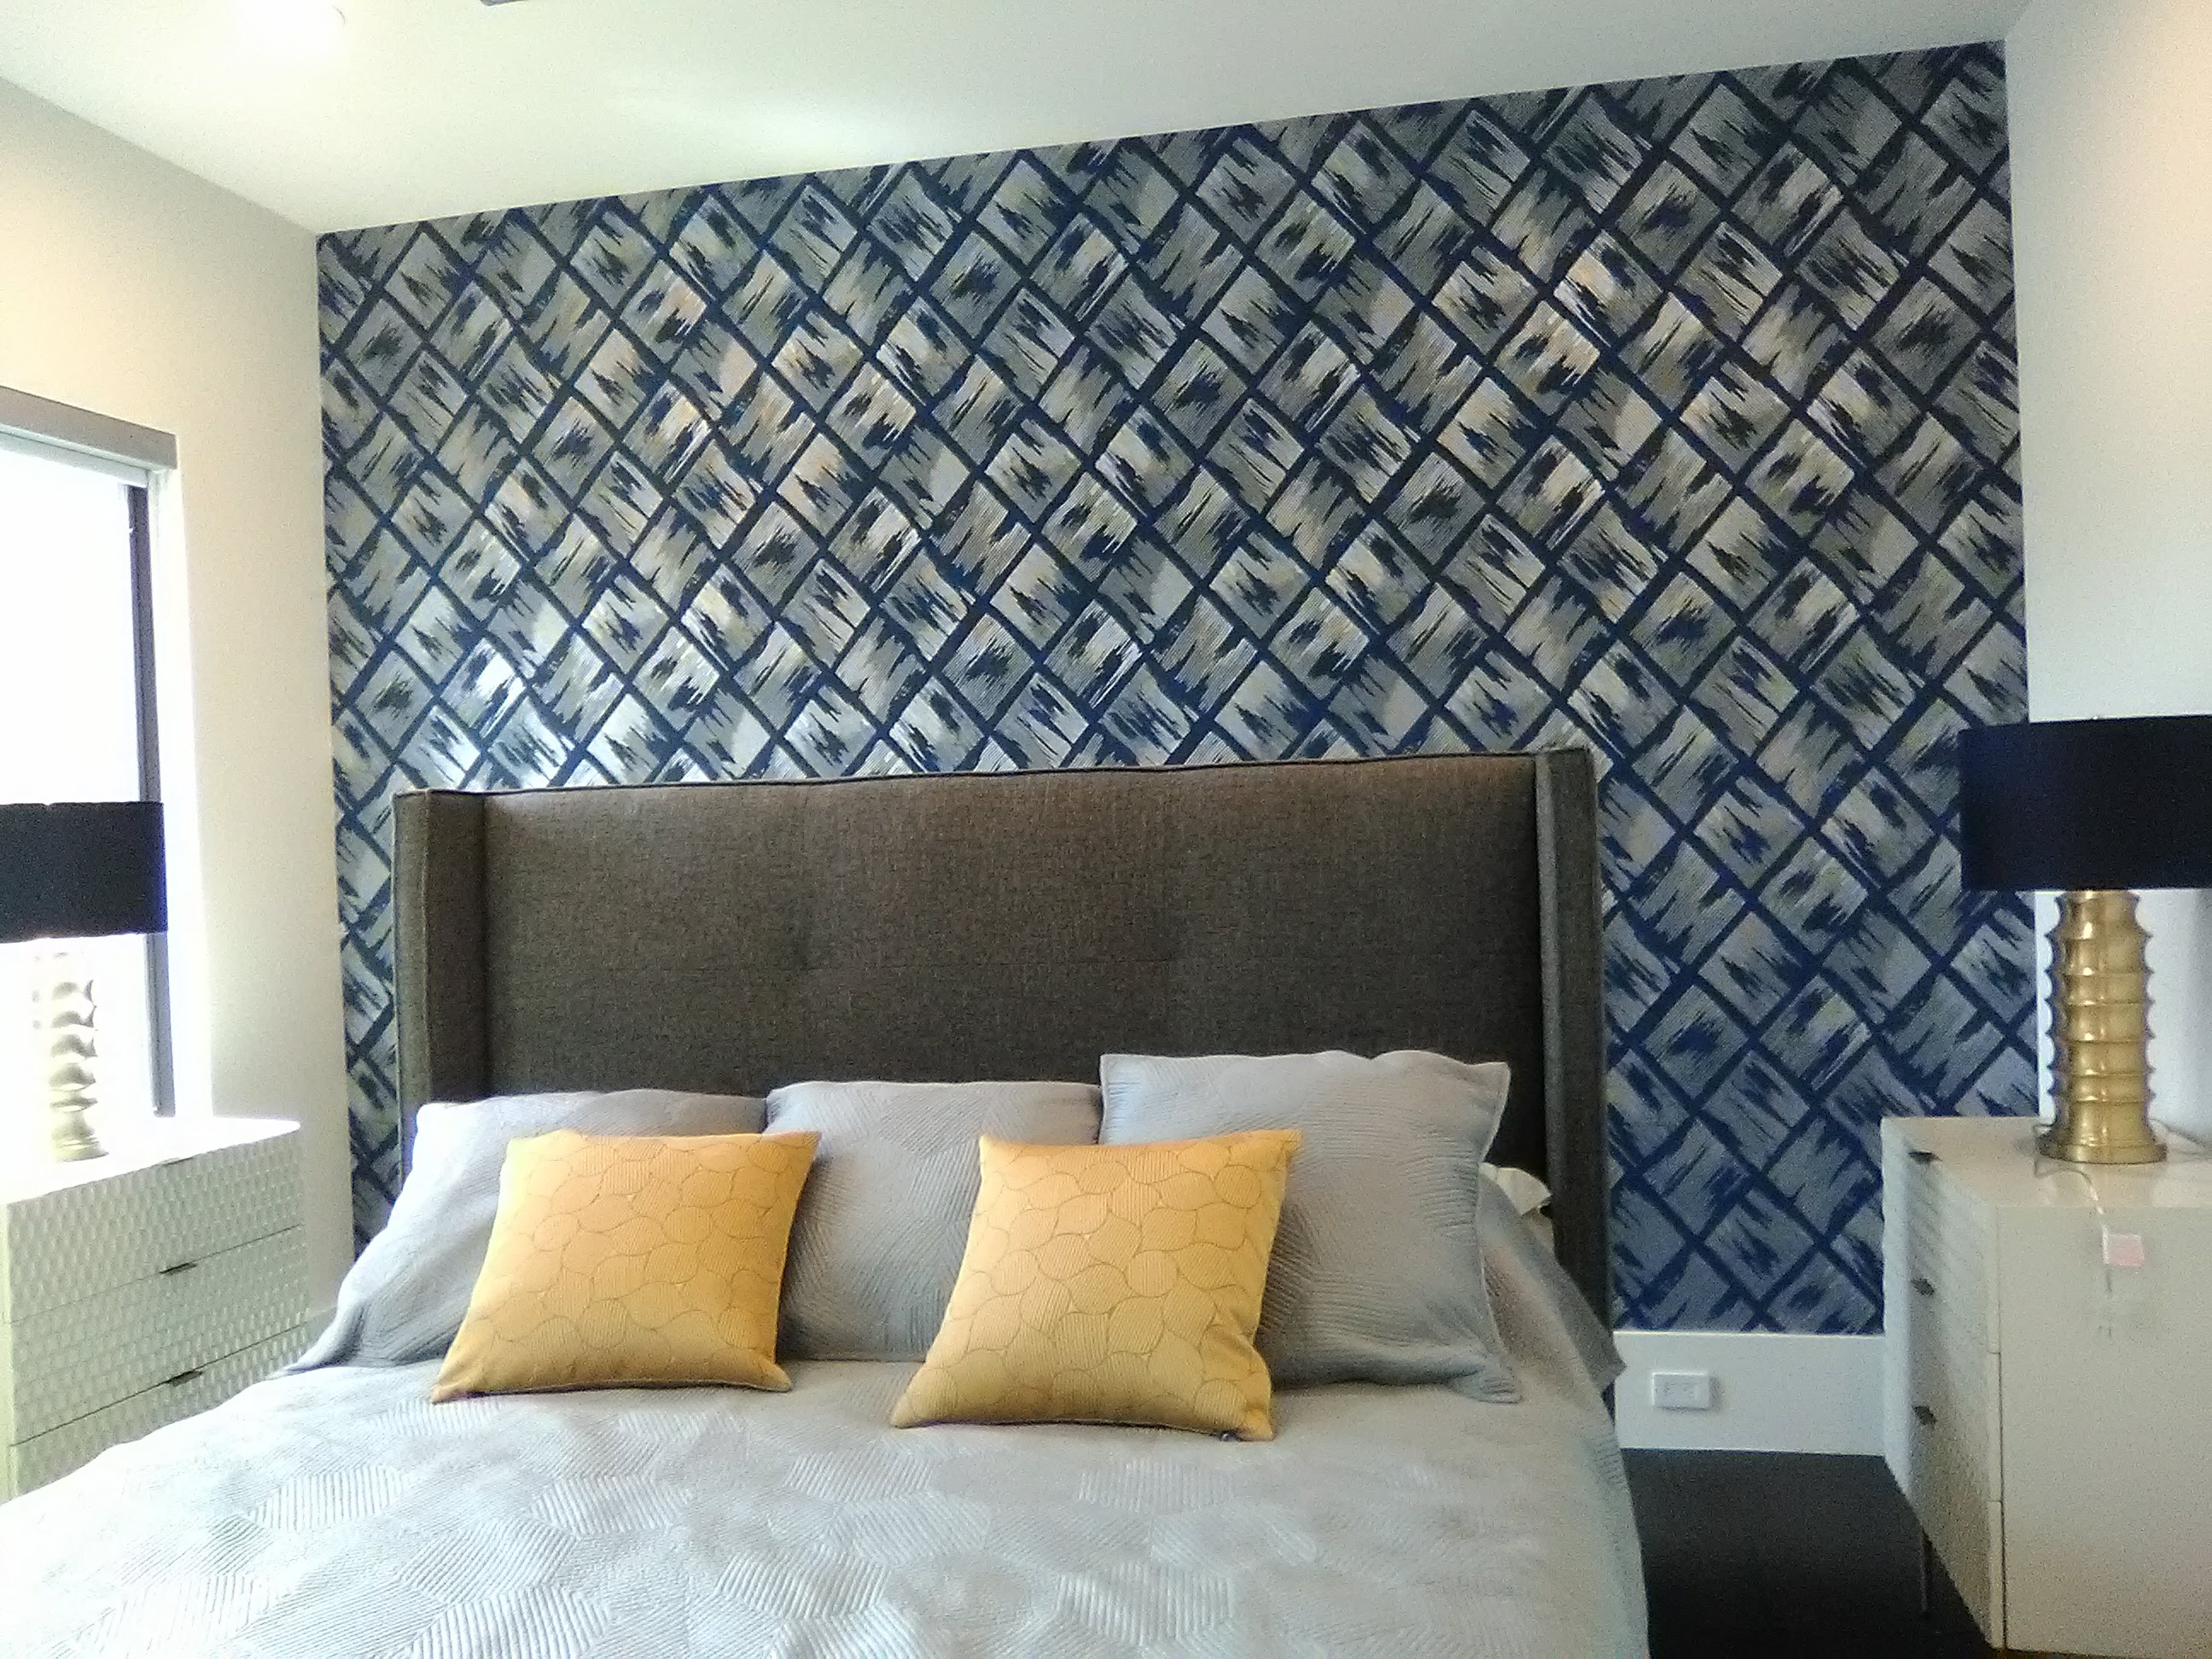 Basket Weave Wallpaper Pattern on a Bedroom Accent Wall ...